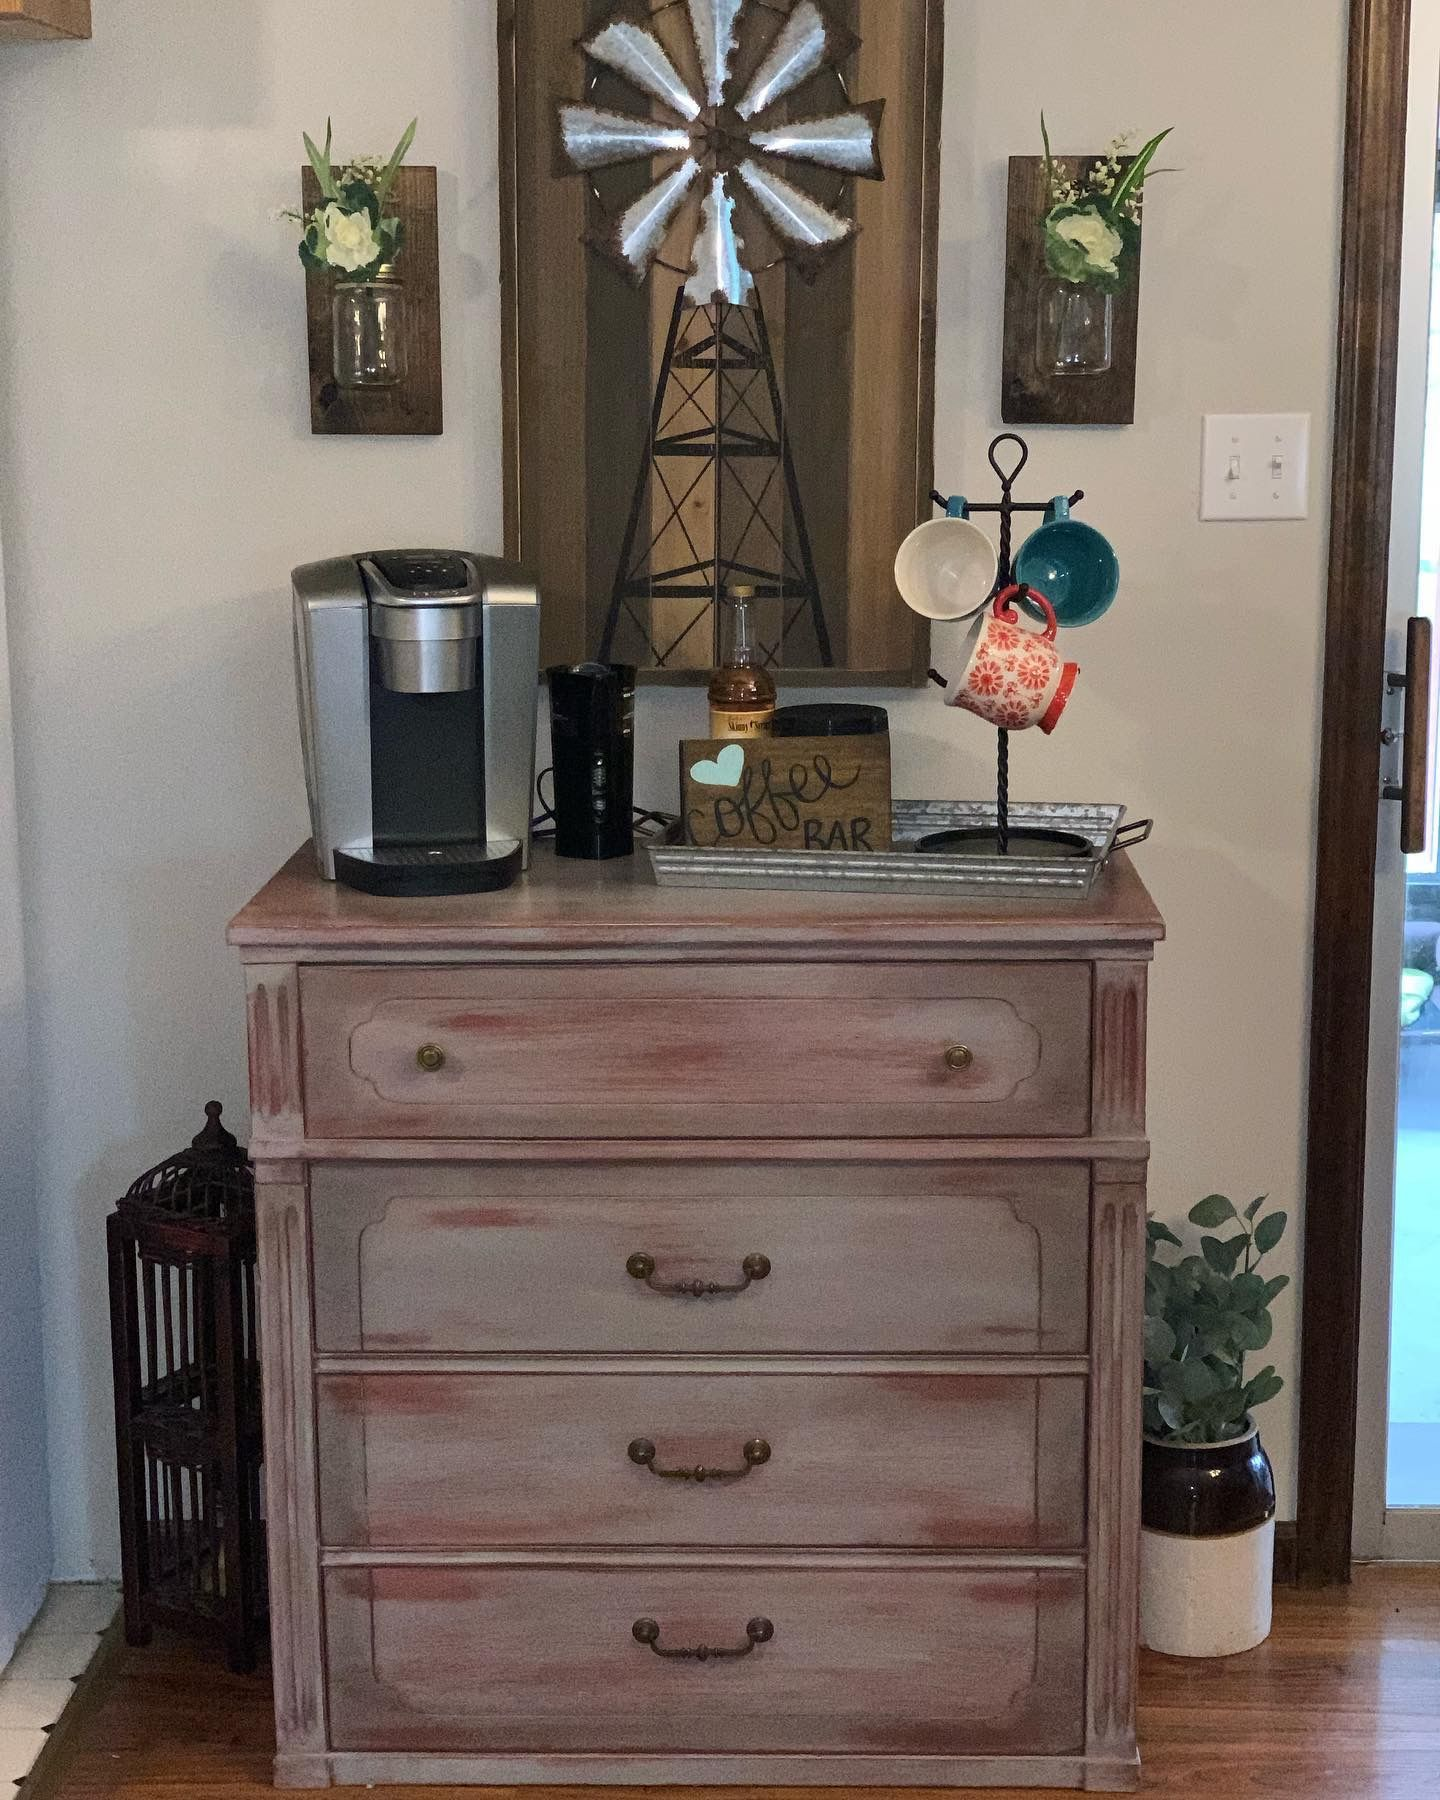 Refinished small dresser turned coffee bar with dining